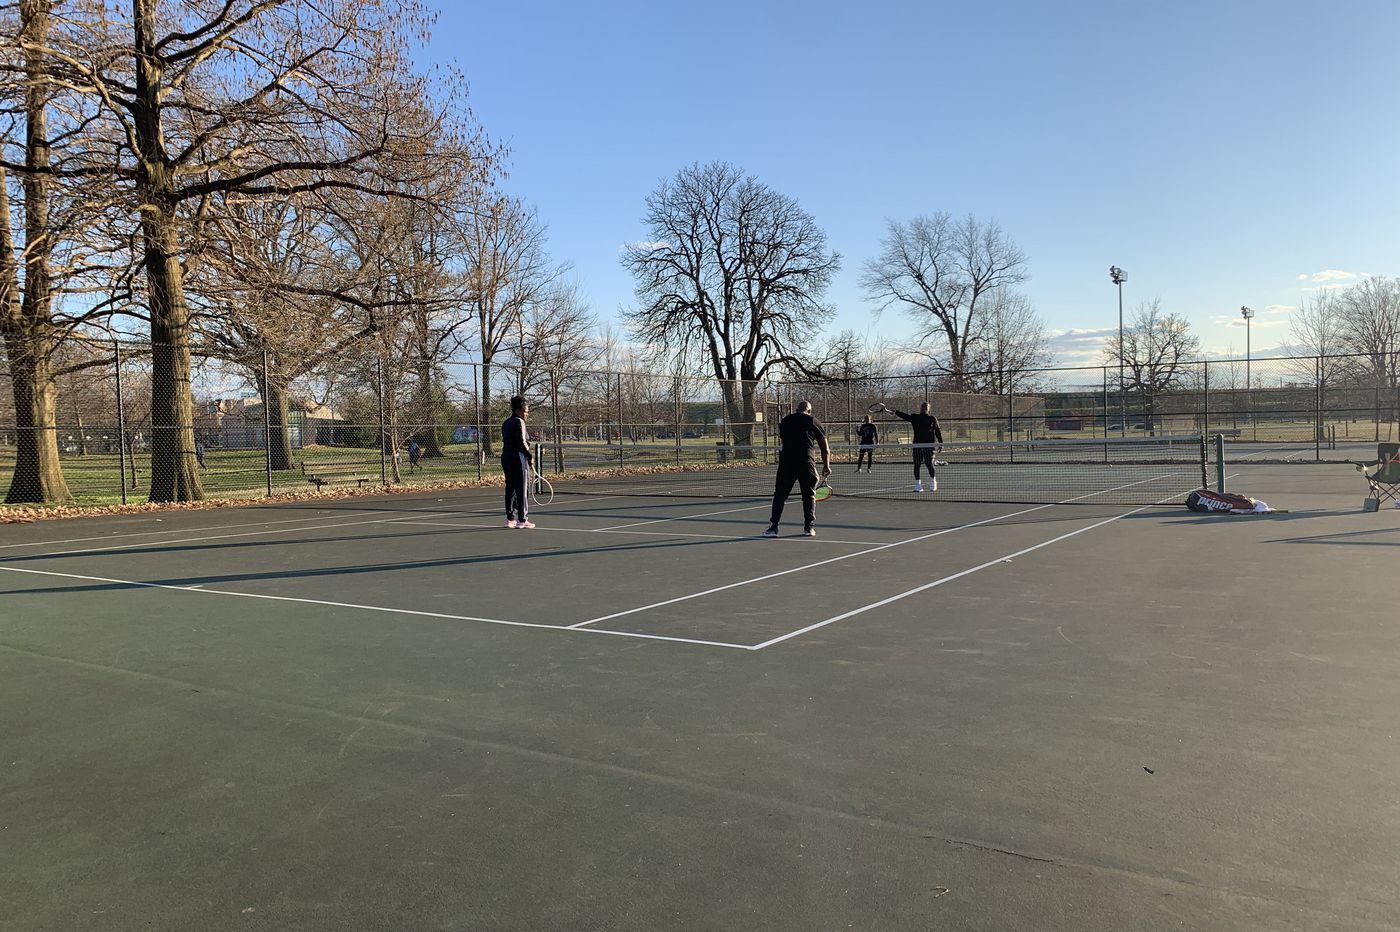 Tennis is a socially distant game by design, so why doesn't the city reopen its tennis courts?